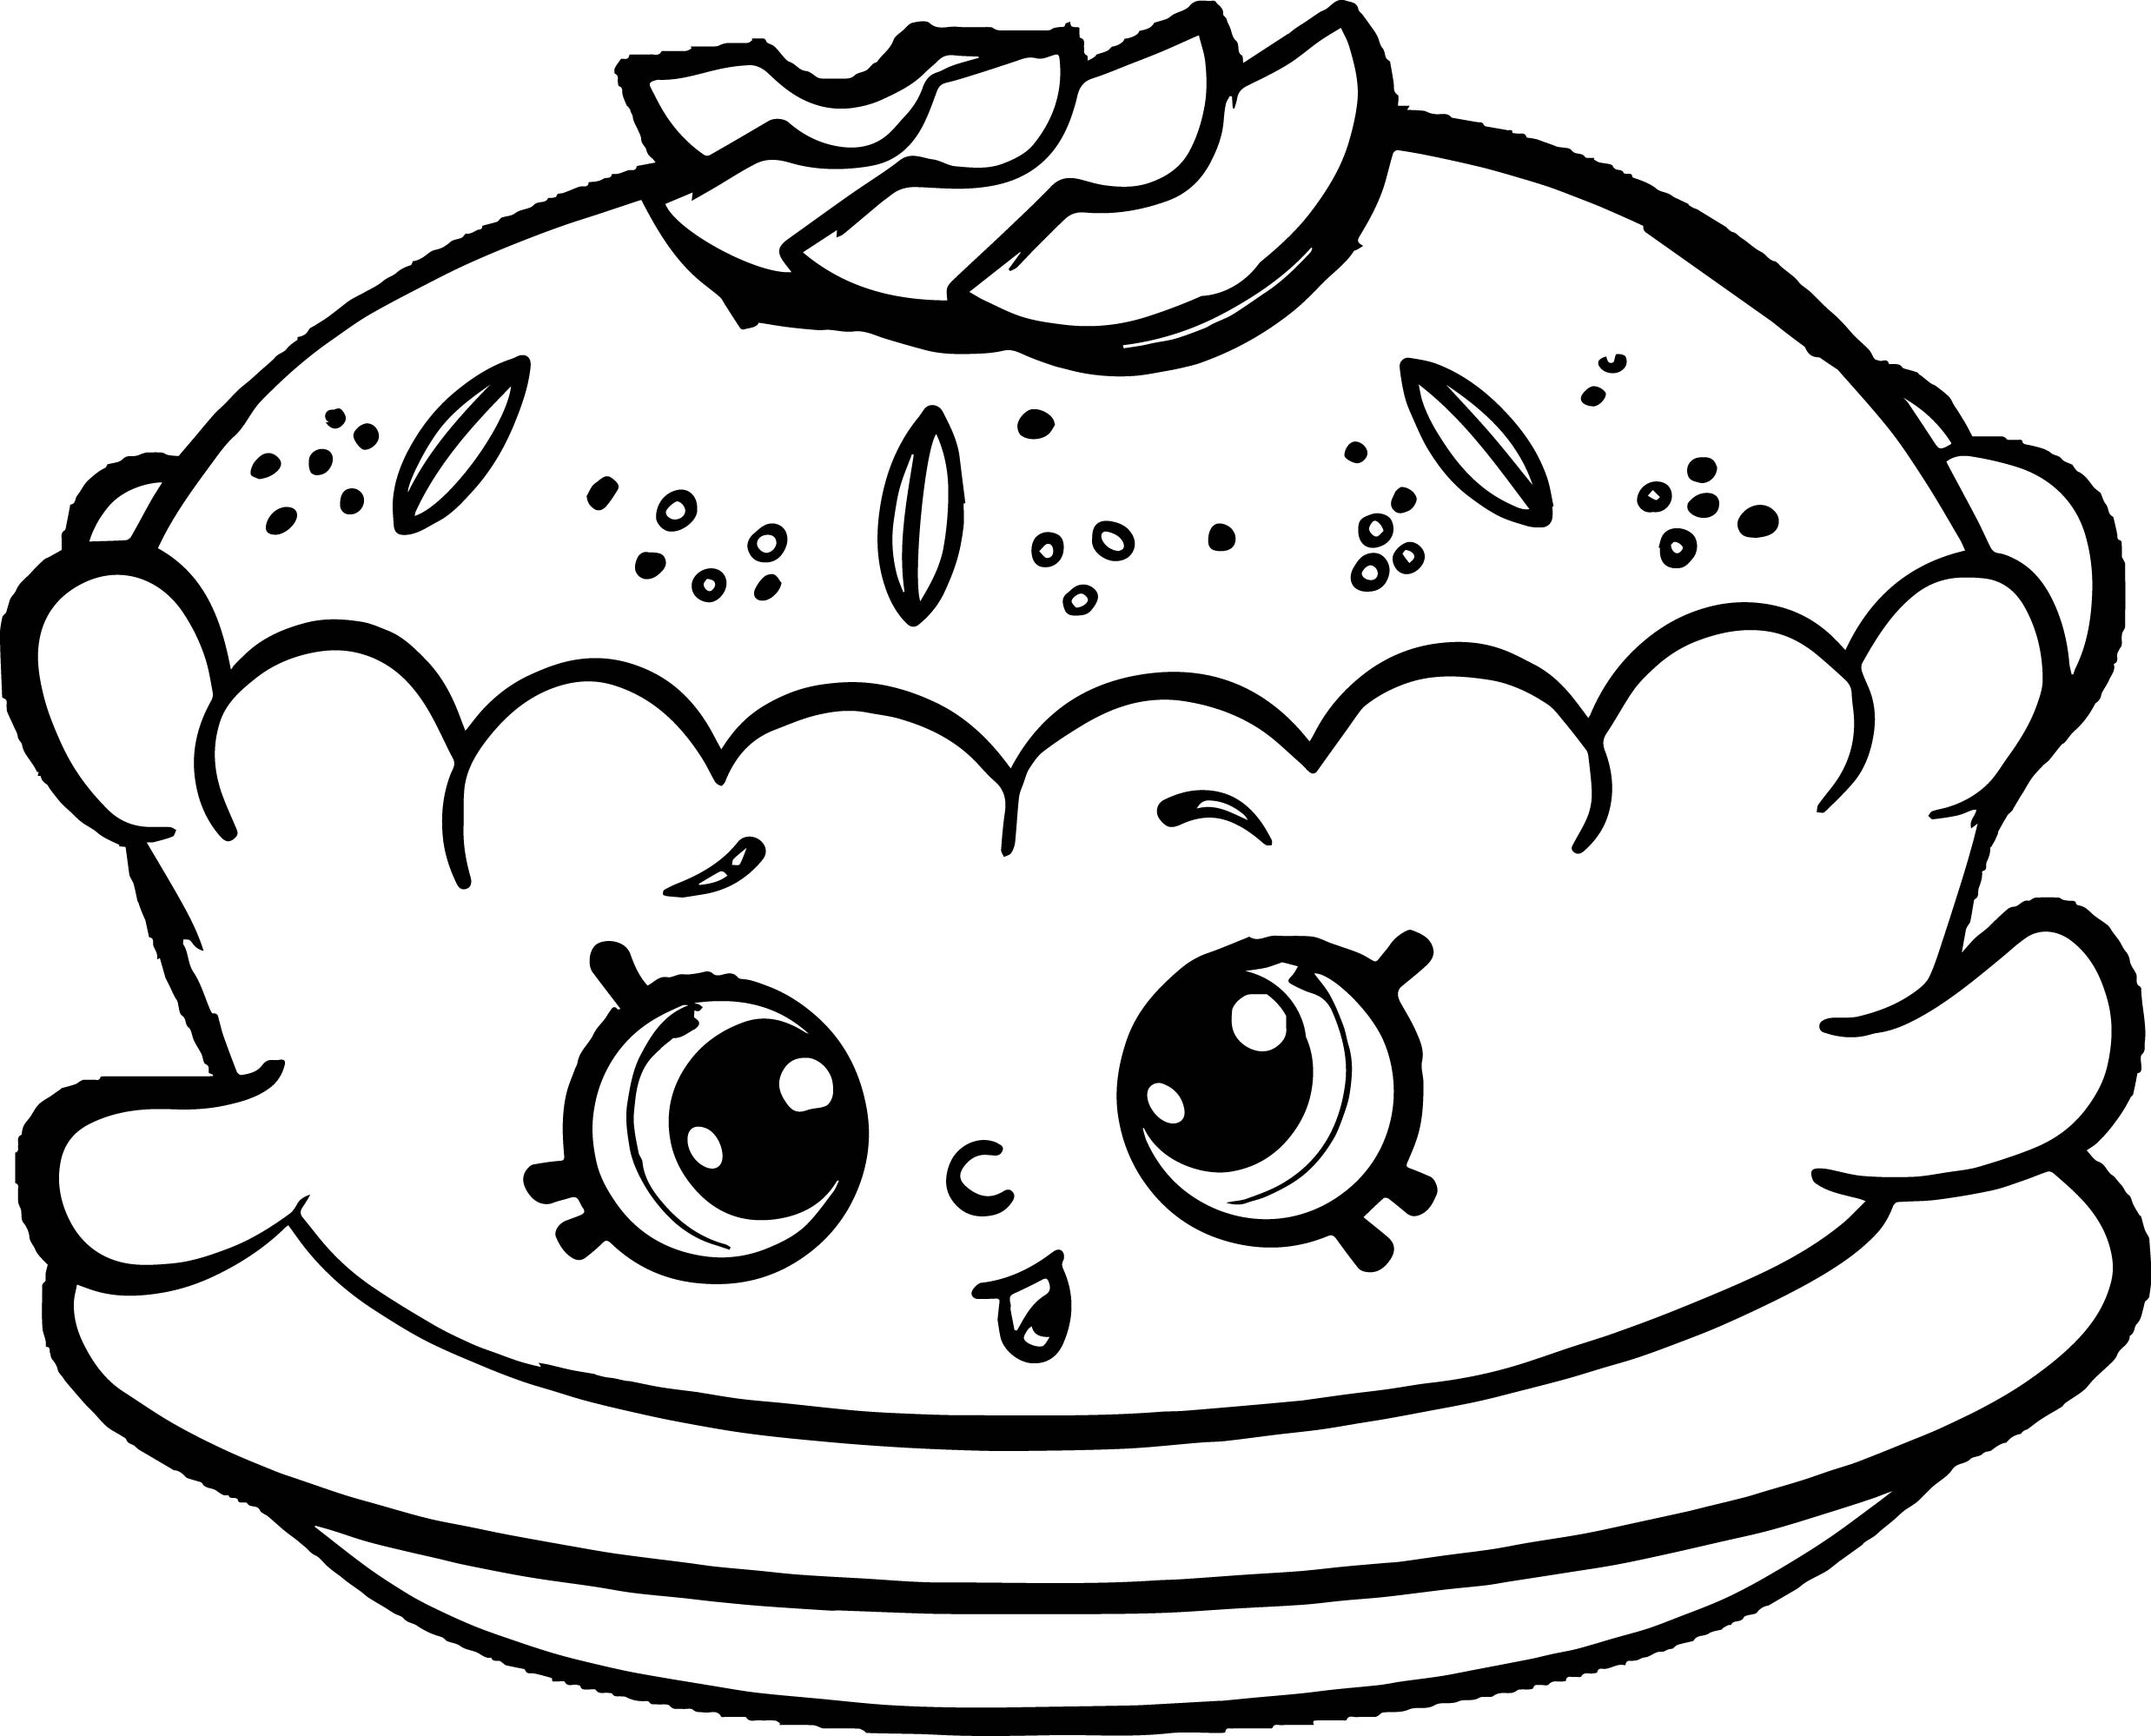 Coloring Pages Apple Pie : Coloring pages apples a is for apple page twisty